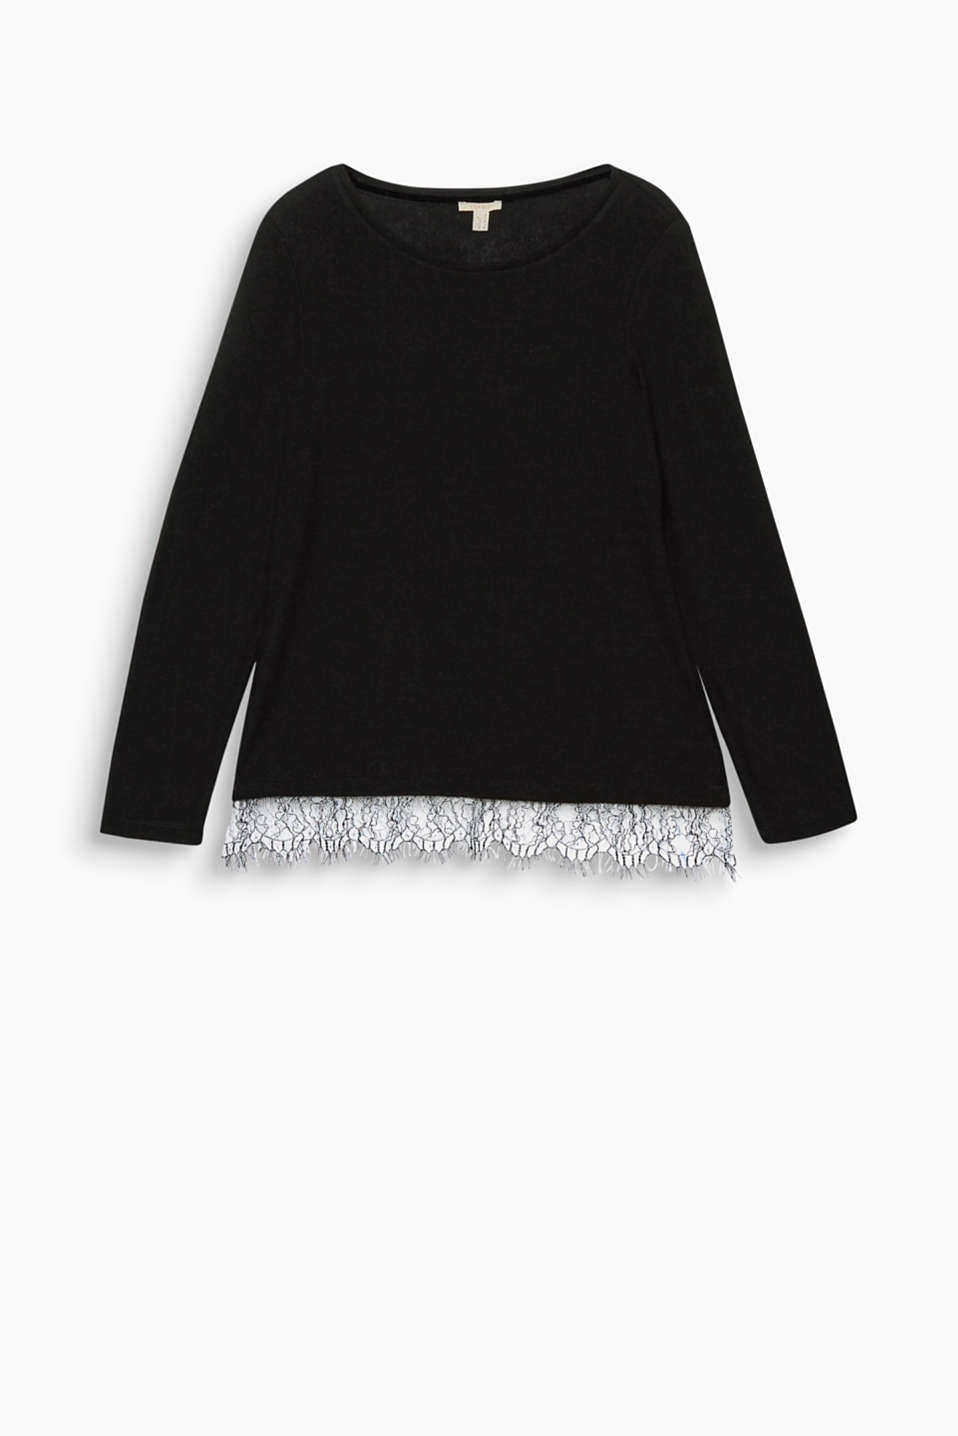 Two-tone is trendy: just like the bi-colour lace hem trim on this sensationally soft, melange long sleeve top!